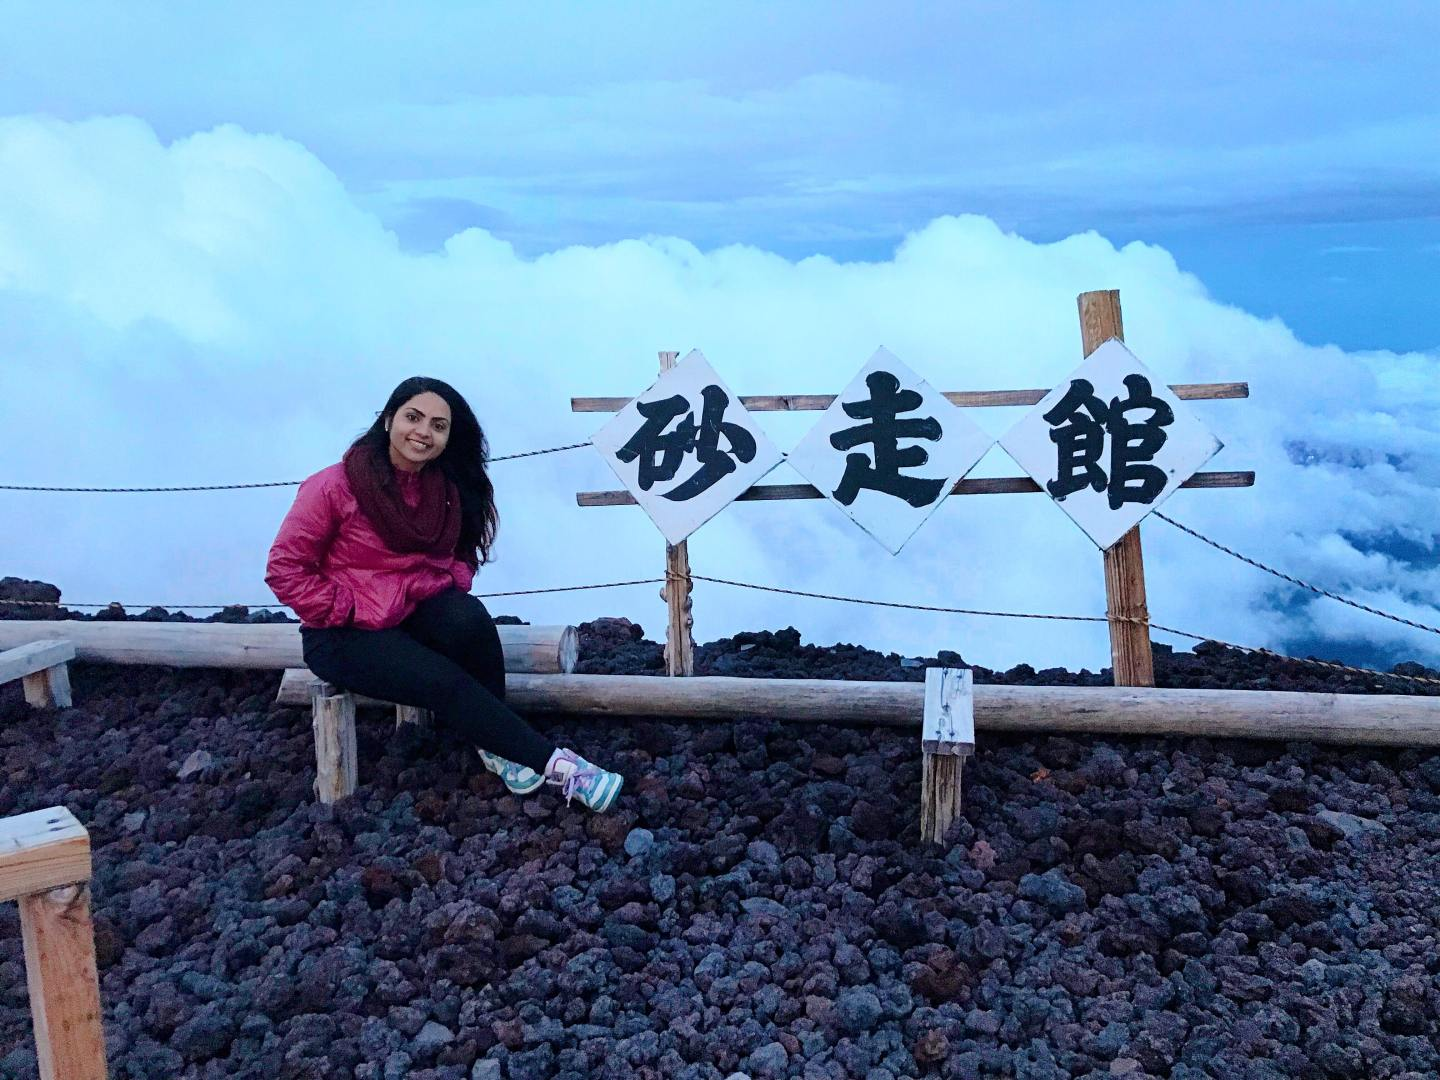 Climbing Mt. Fuji as a Complete Beginner